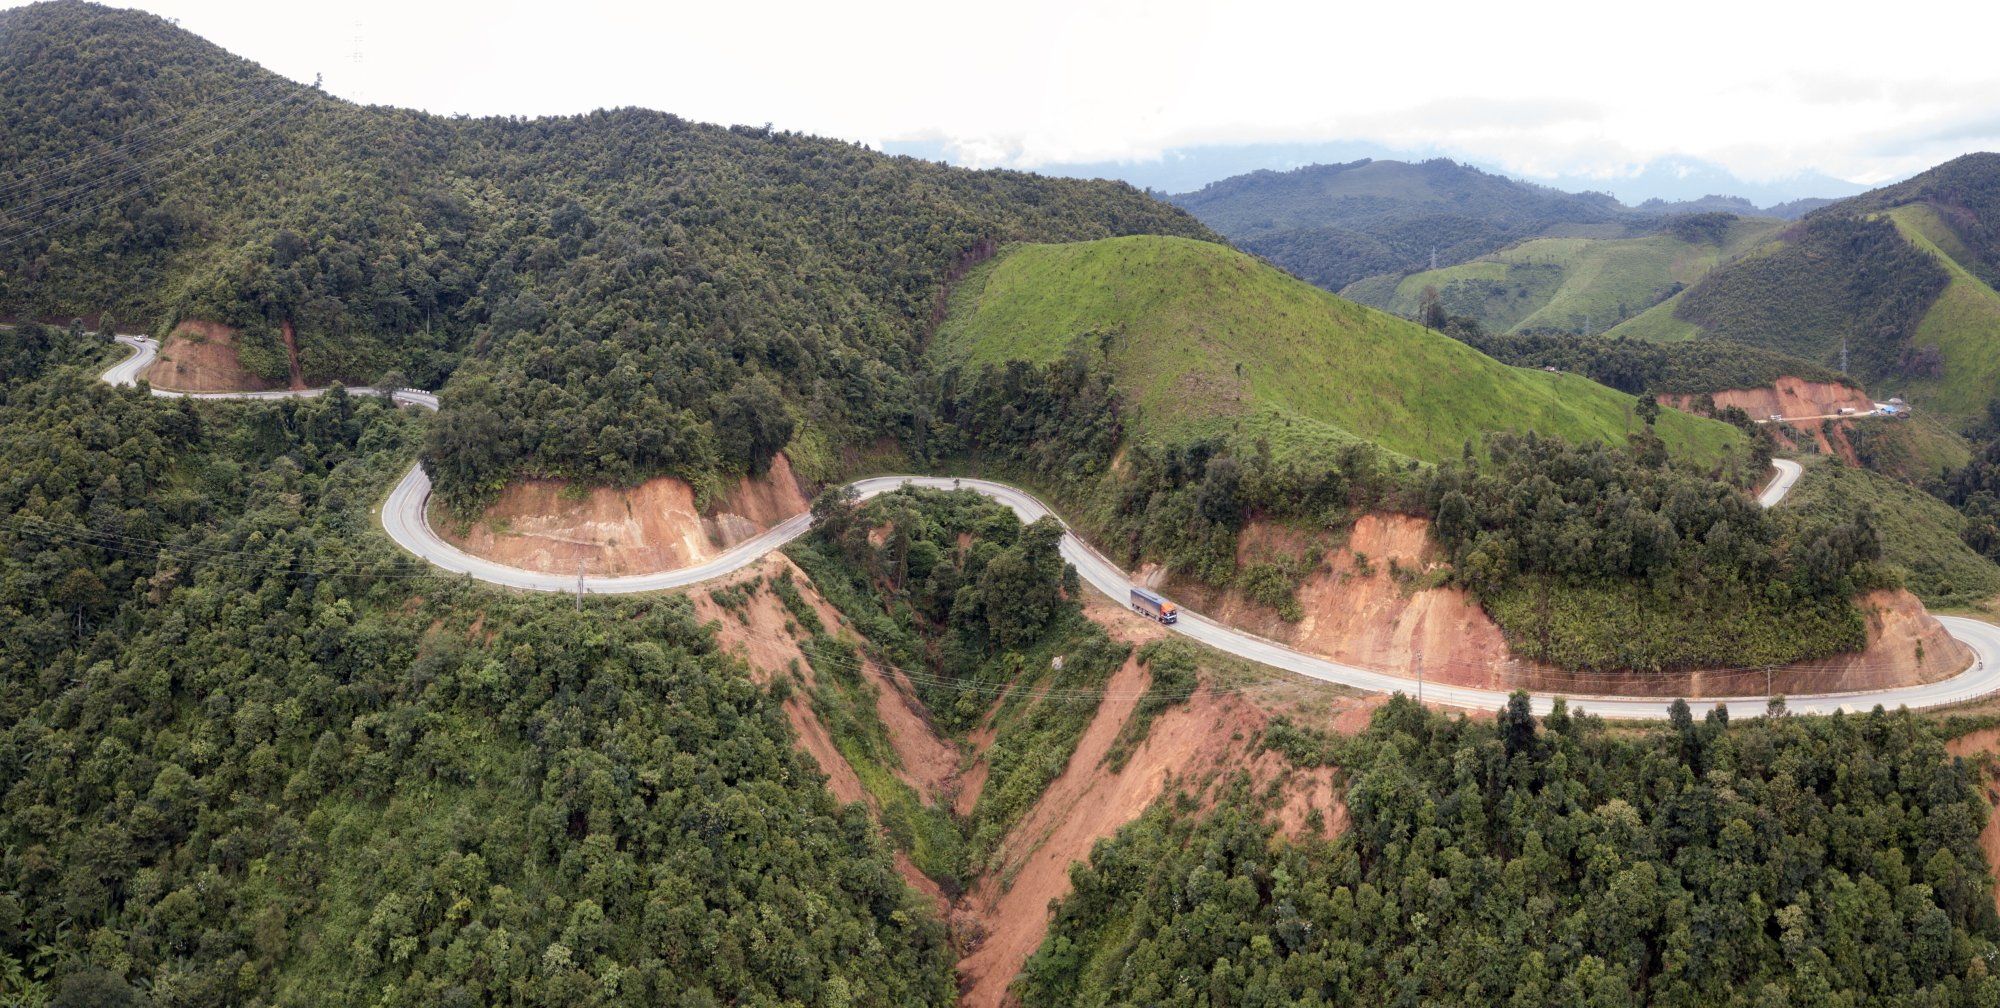 Laos: While this mudslide has been cleared, hundreds of mudslides cover roads in Laos, making many villages inaccessible. More Info